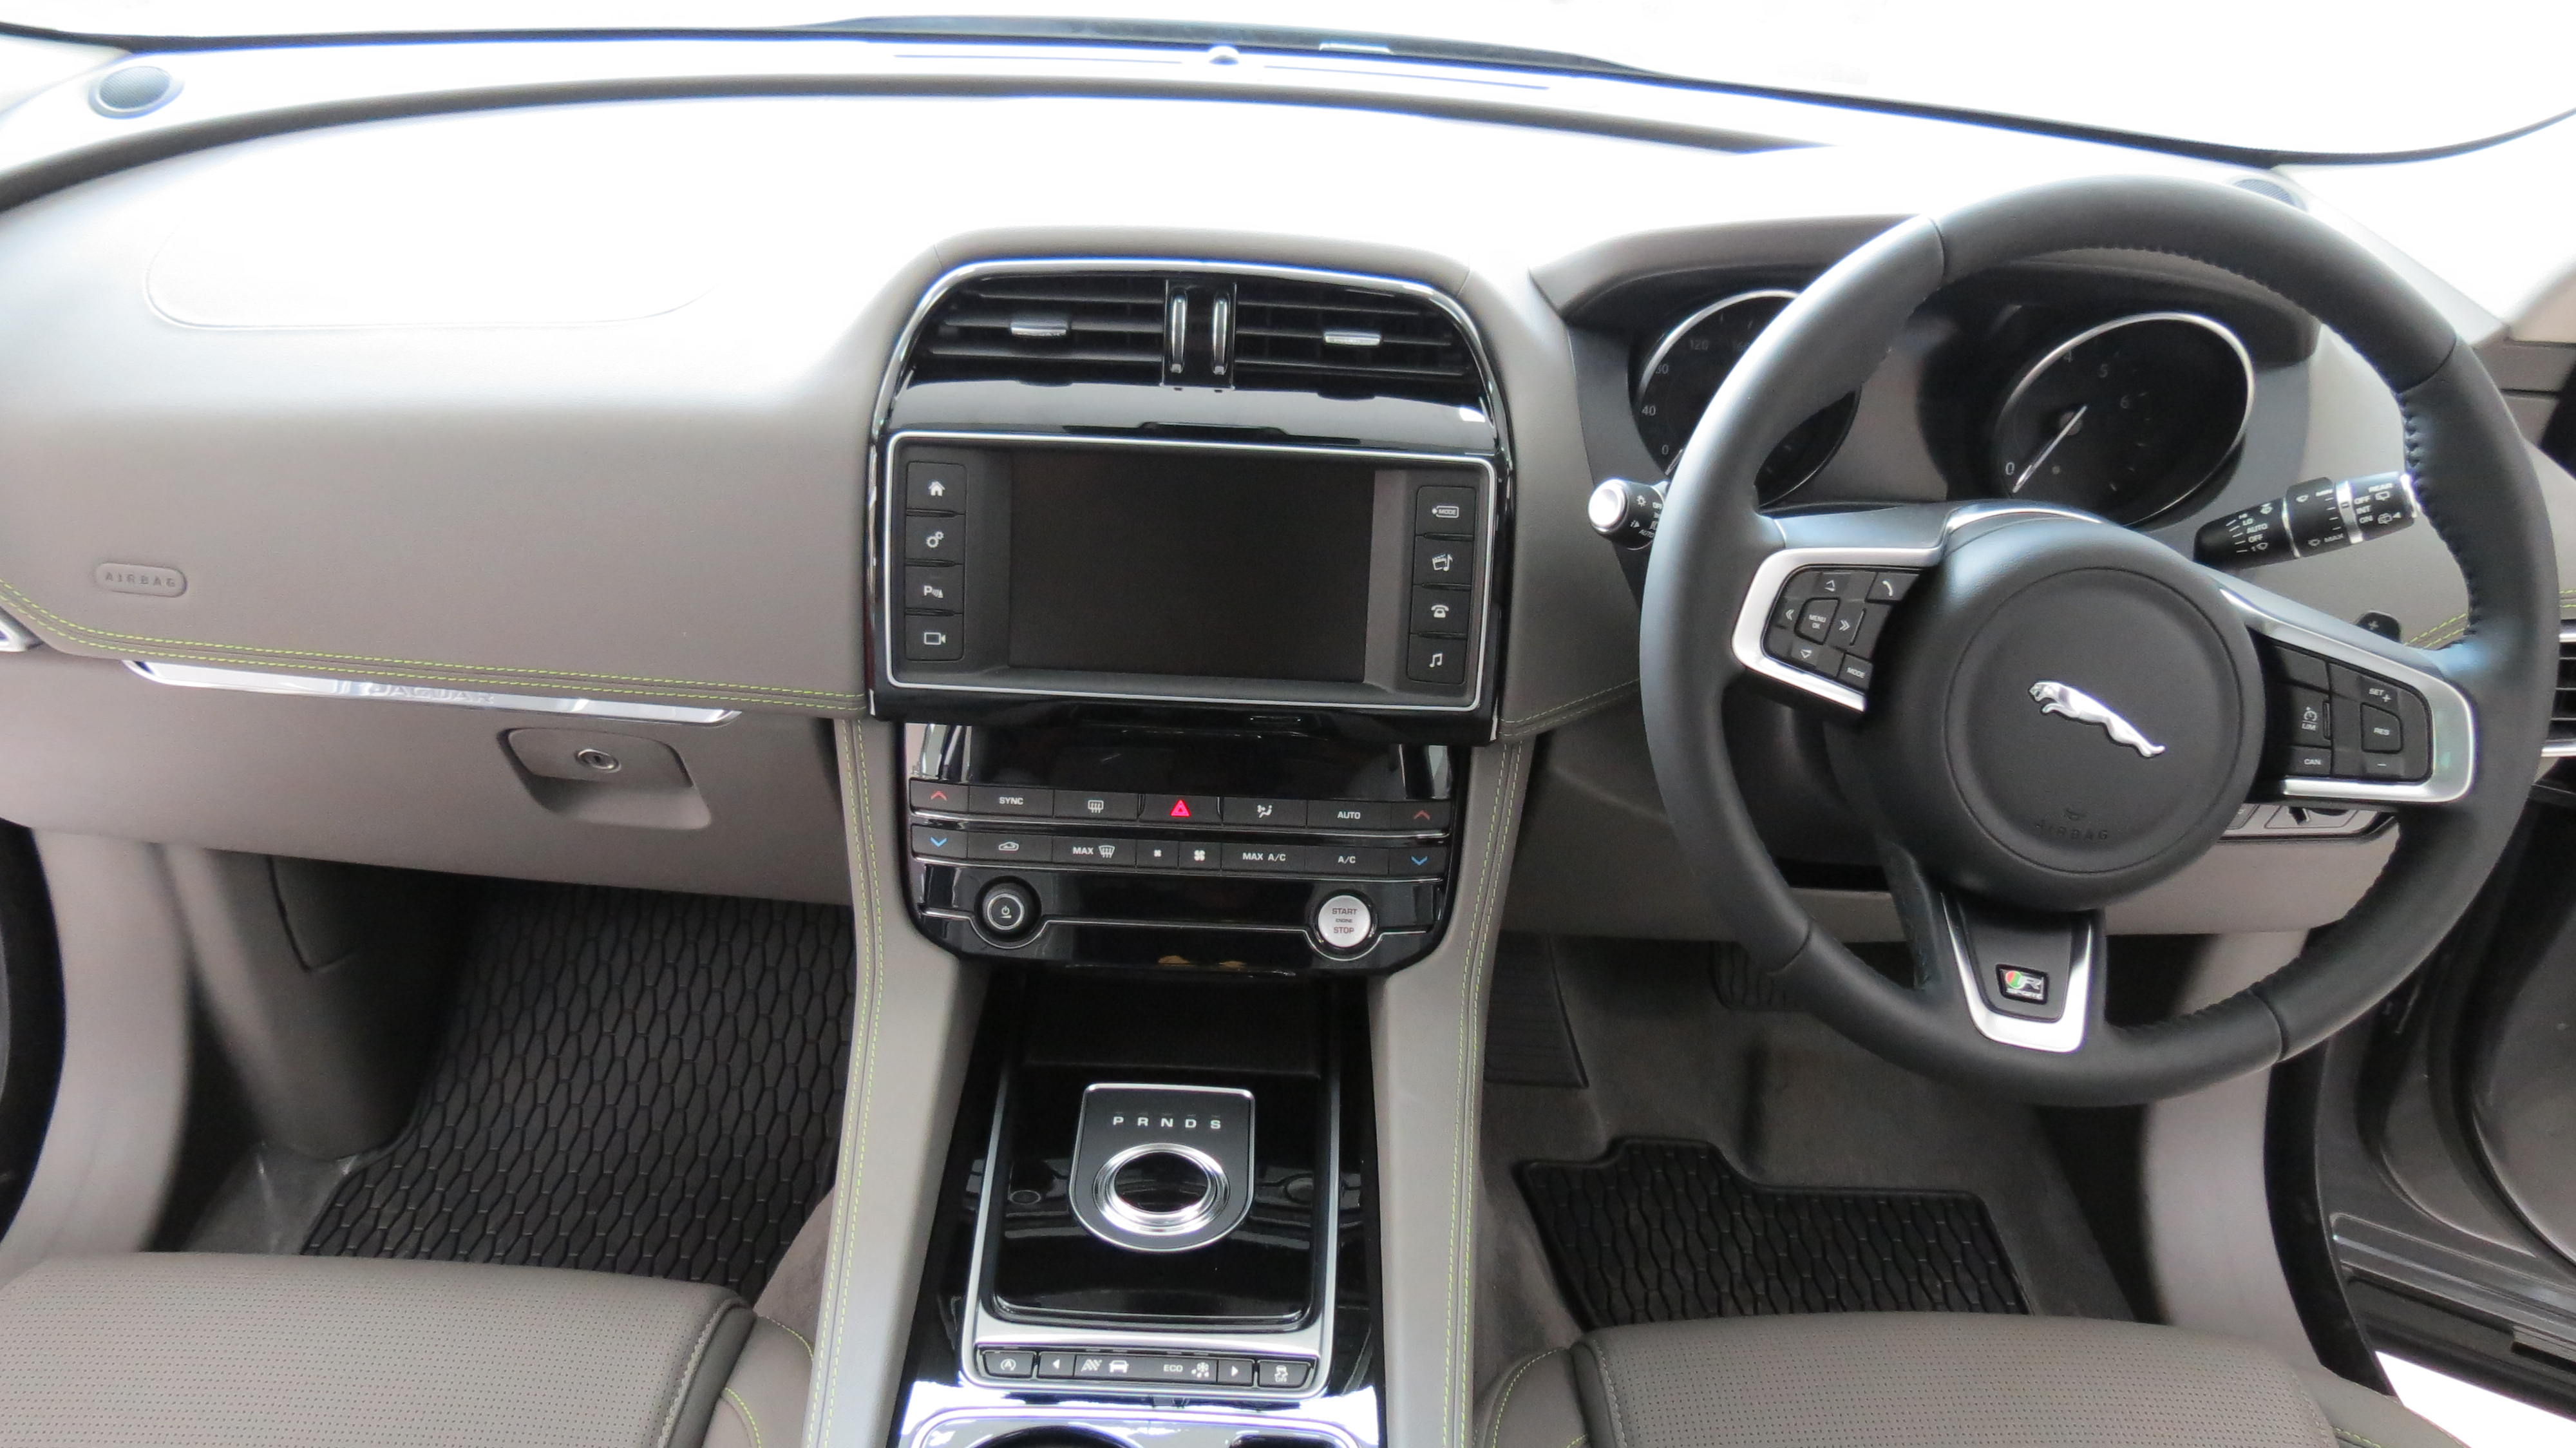 landscape pace review cars make in jag epace market first new with firmly hopes suv to has list bik e reviews sights price car fleets its jaguar advertisement inroads drive